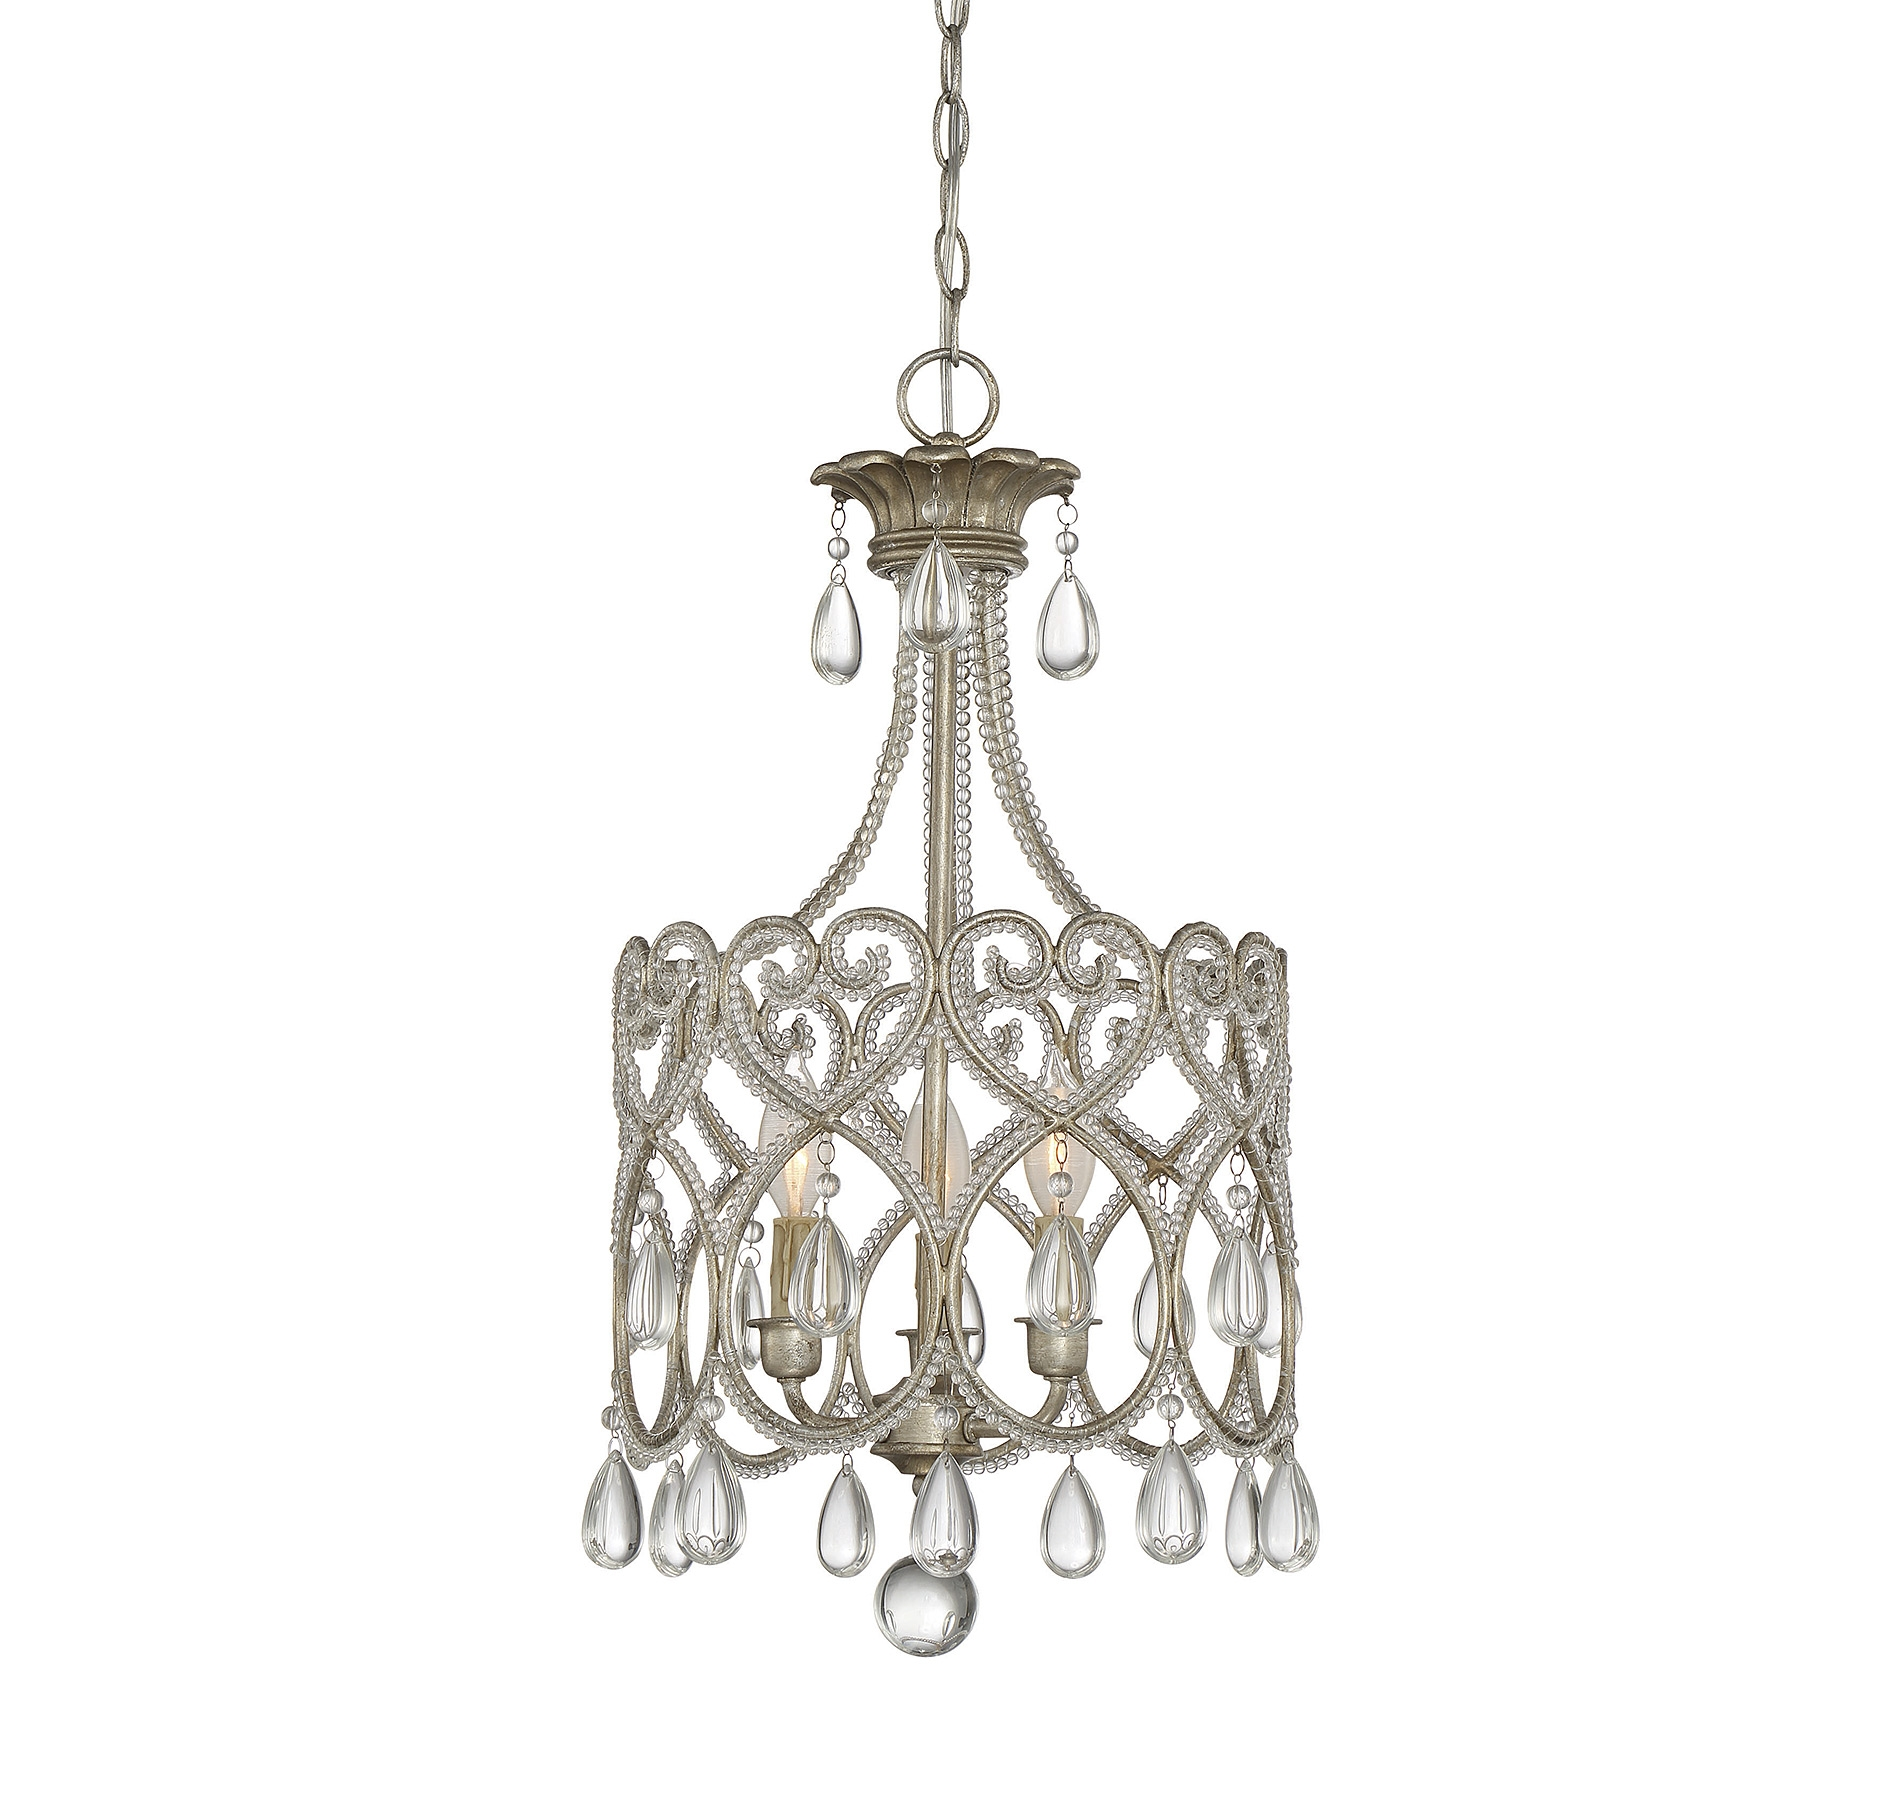 Hampton Bay Kristin 3 Light Antique White Hanging Mini Chandelier For 3 Light Crystal Chandeliers (Image 12 of 25)